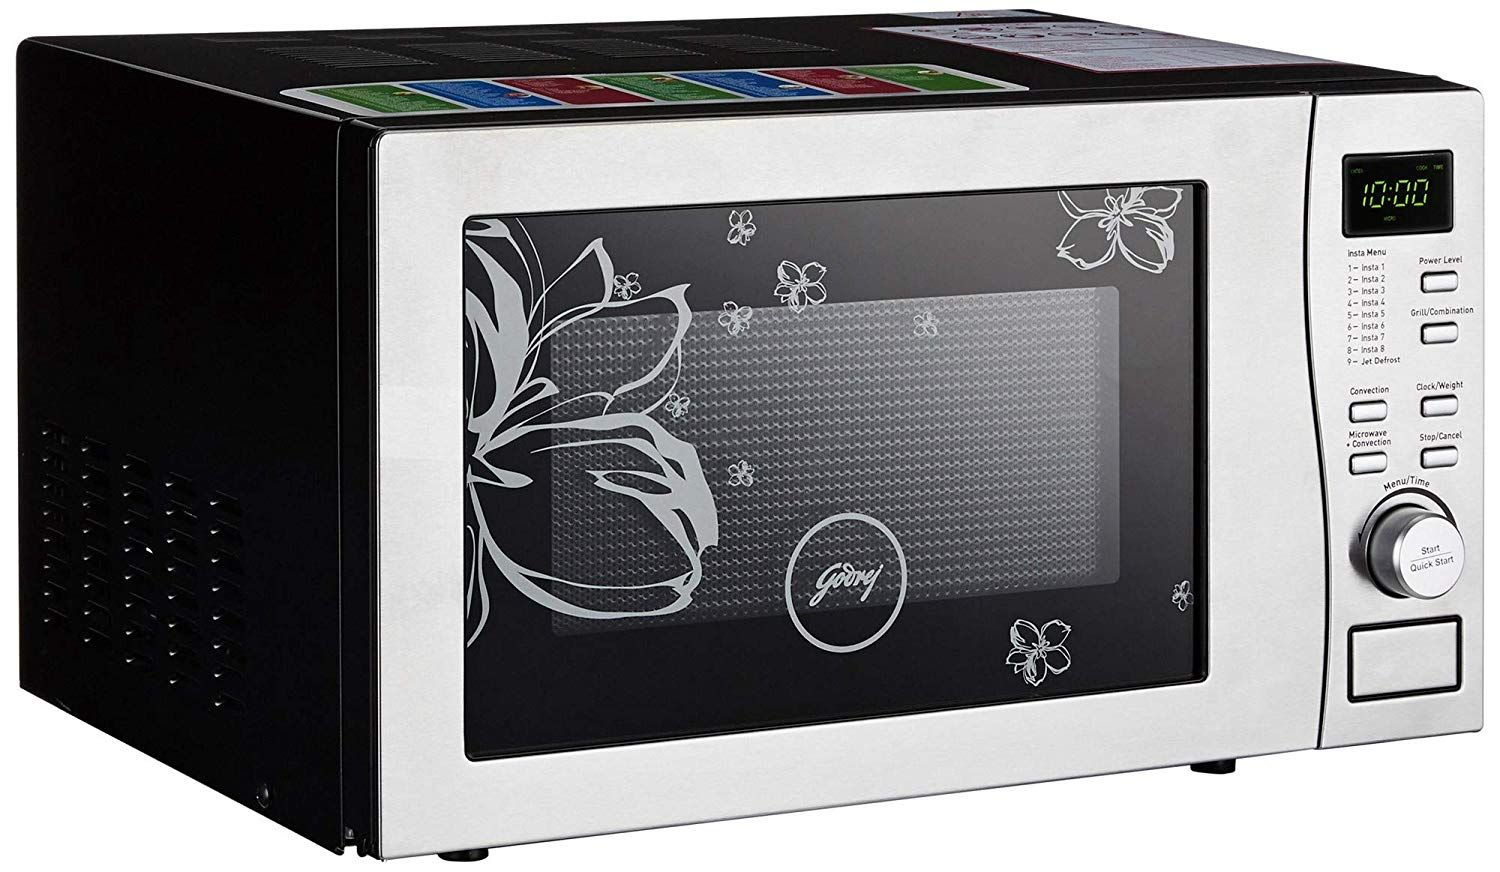 The Convection Microwave Oven Has Captured A Prominent